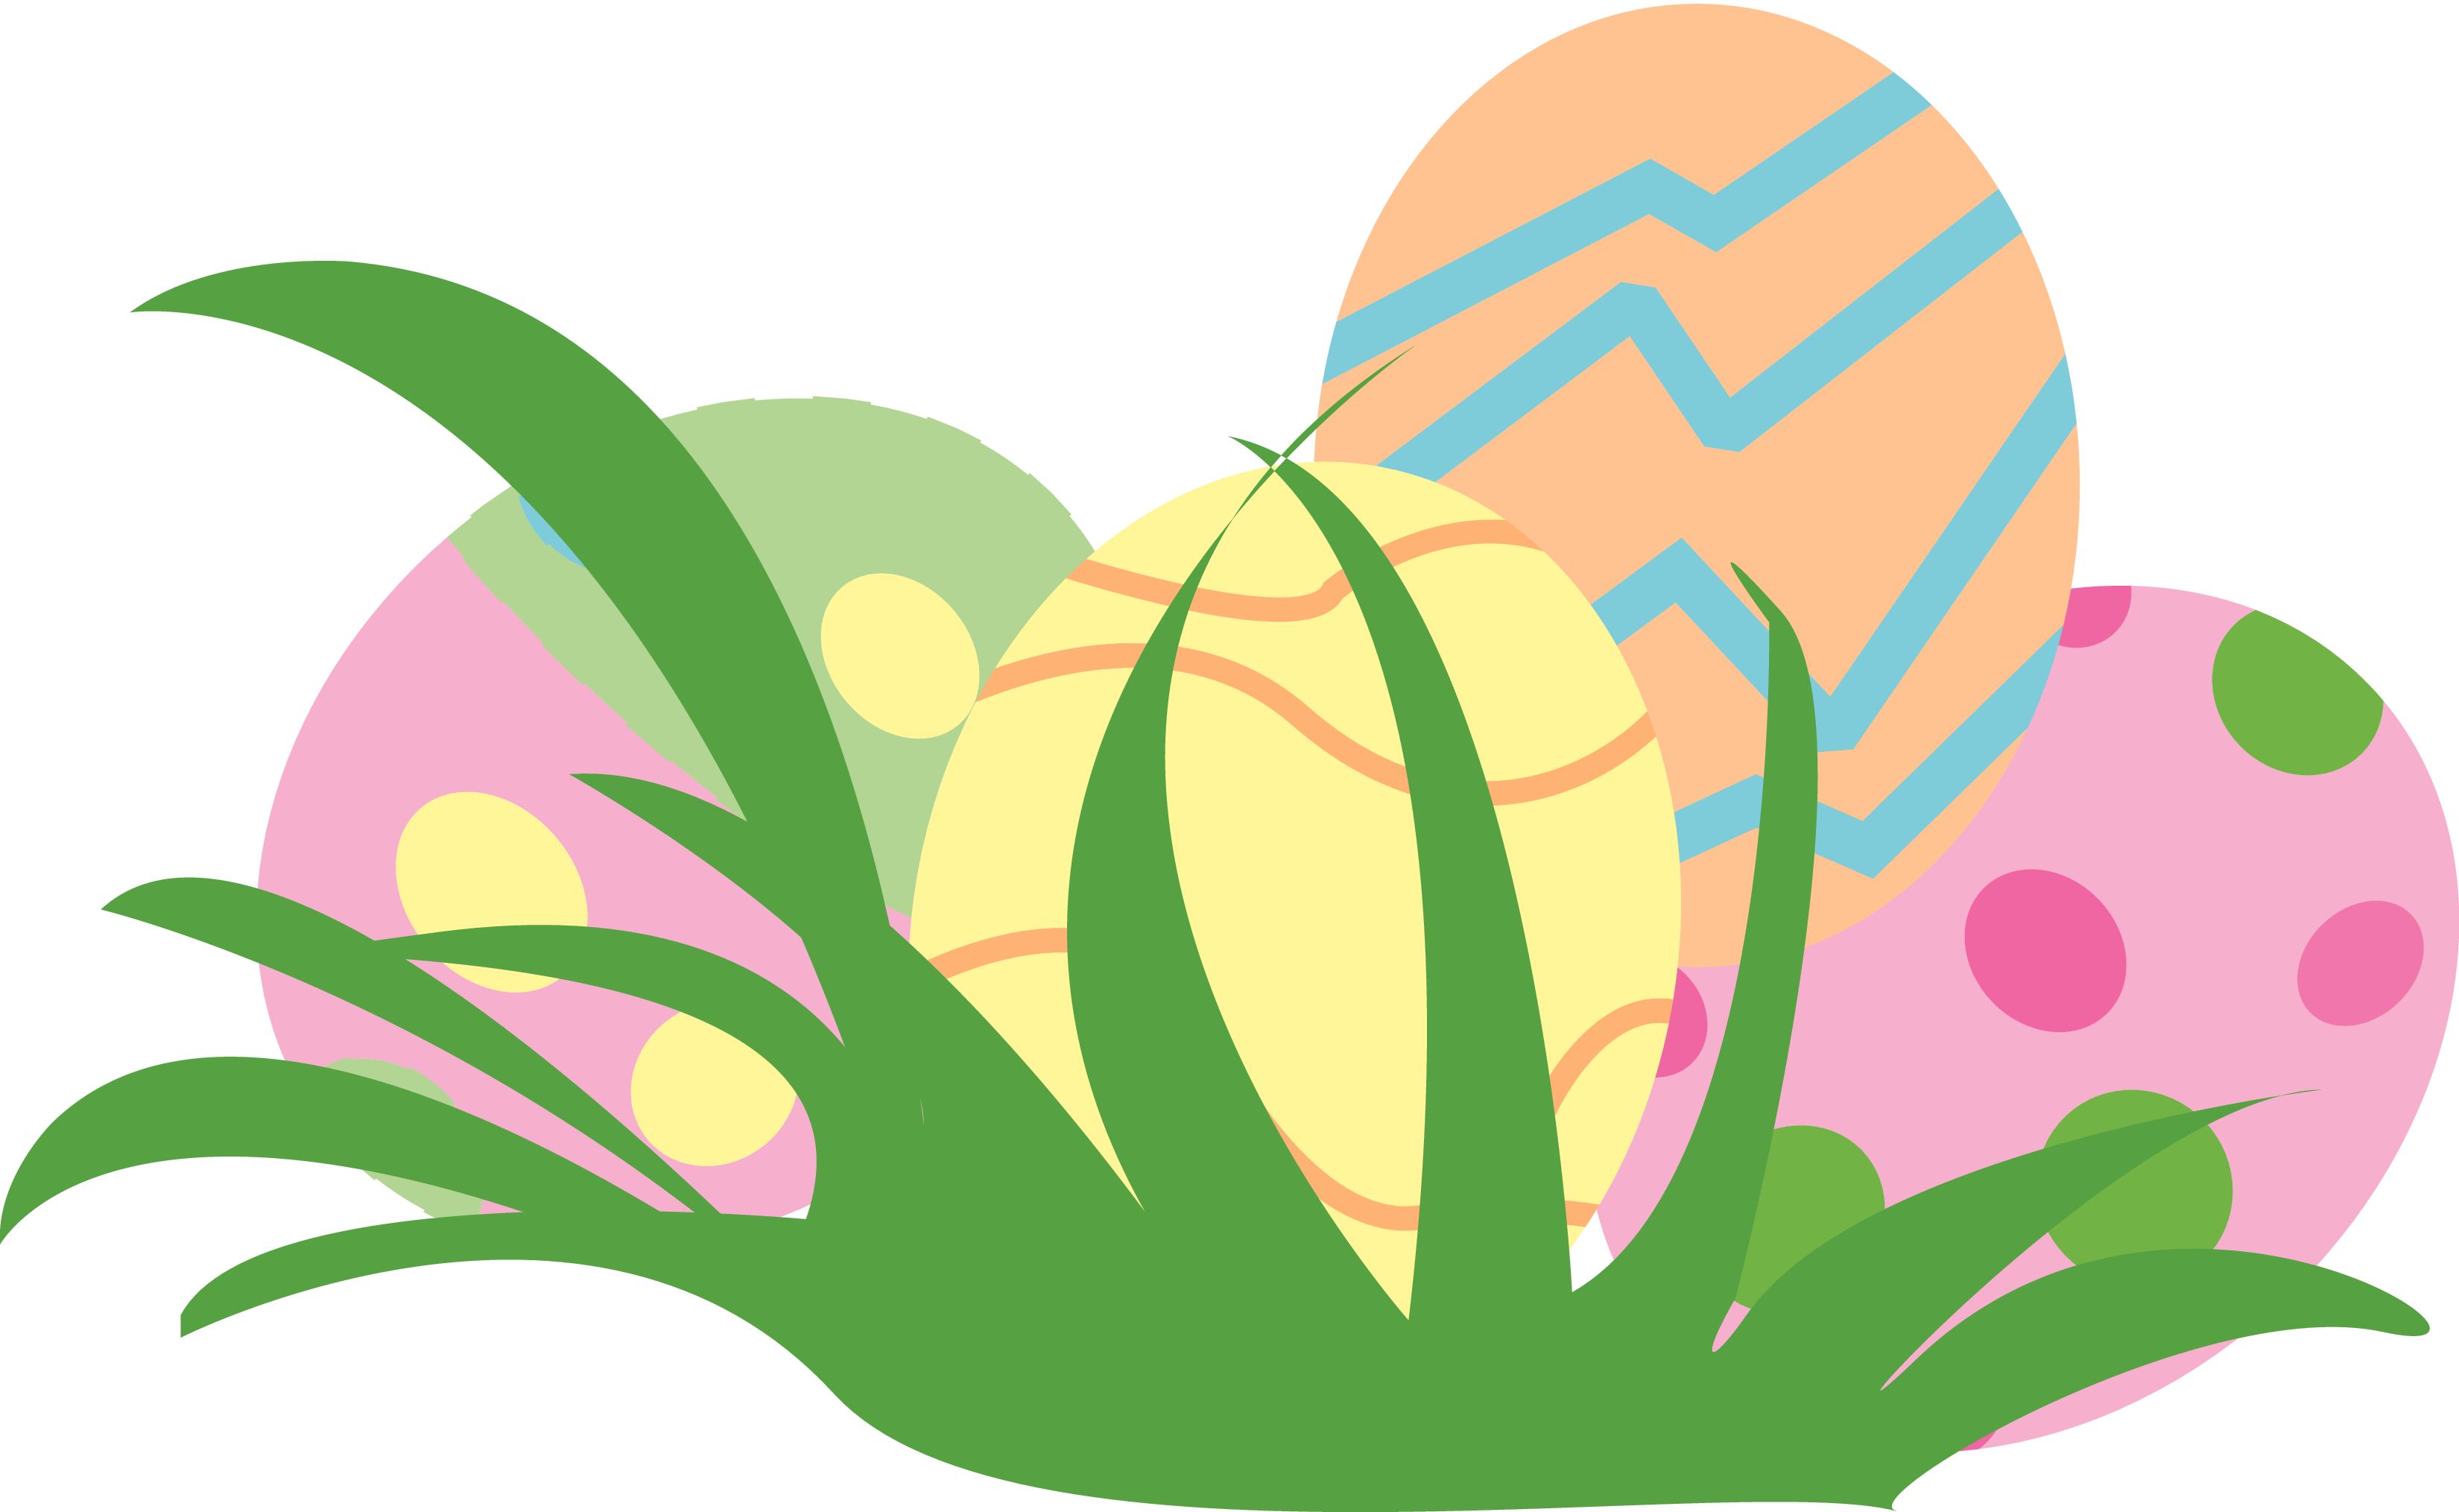 Trail of easter egg clipart.